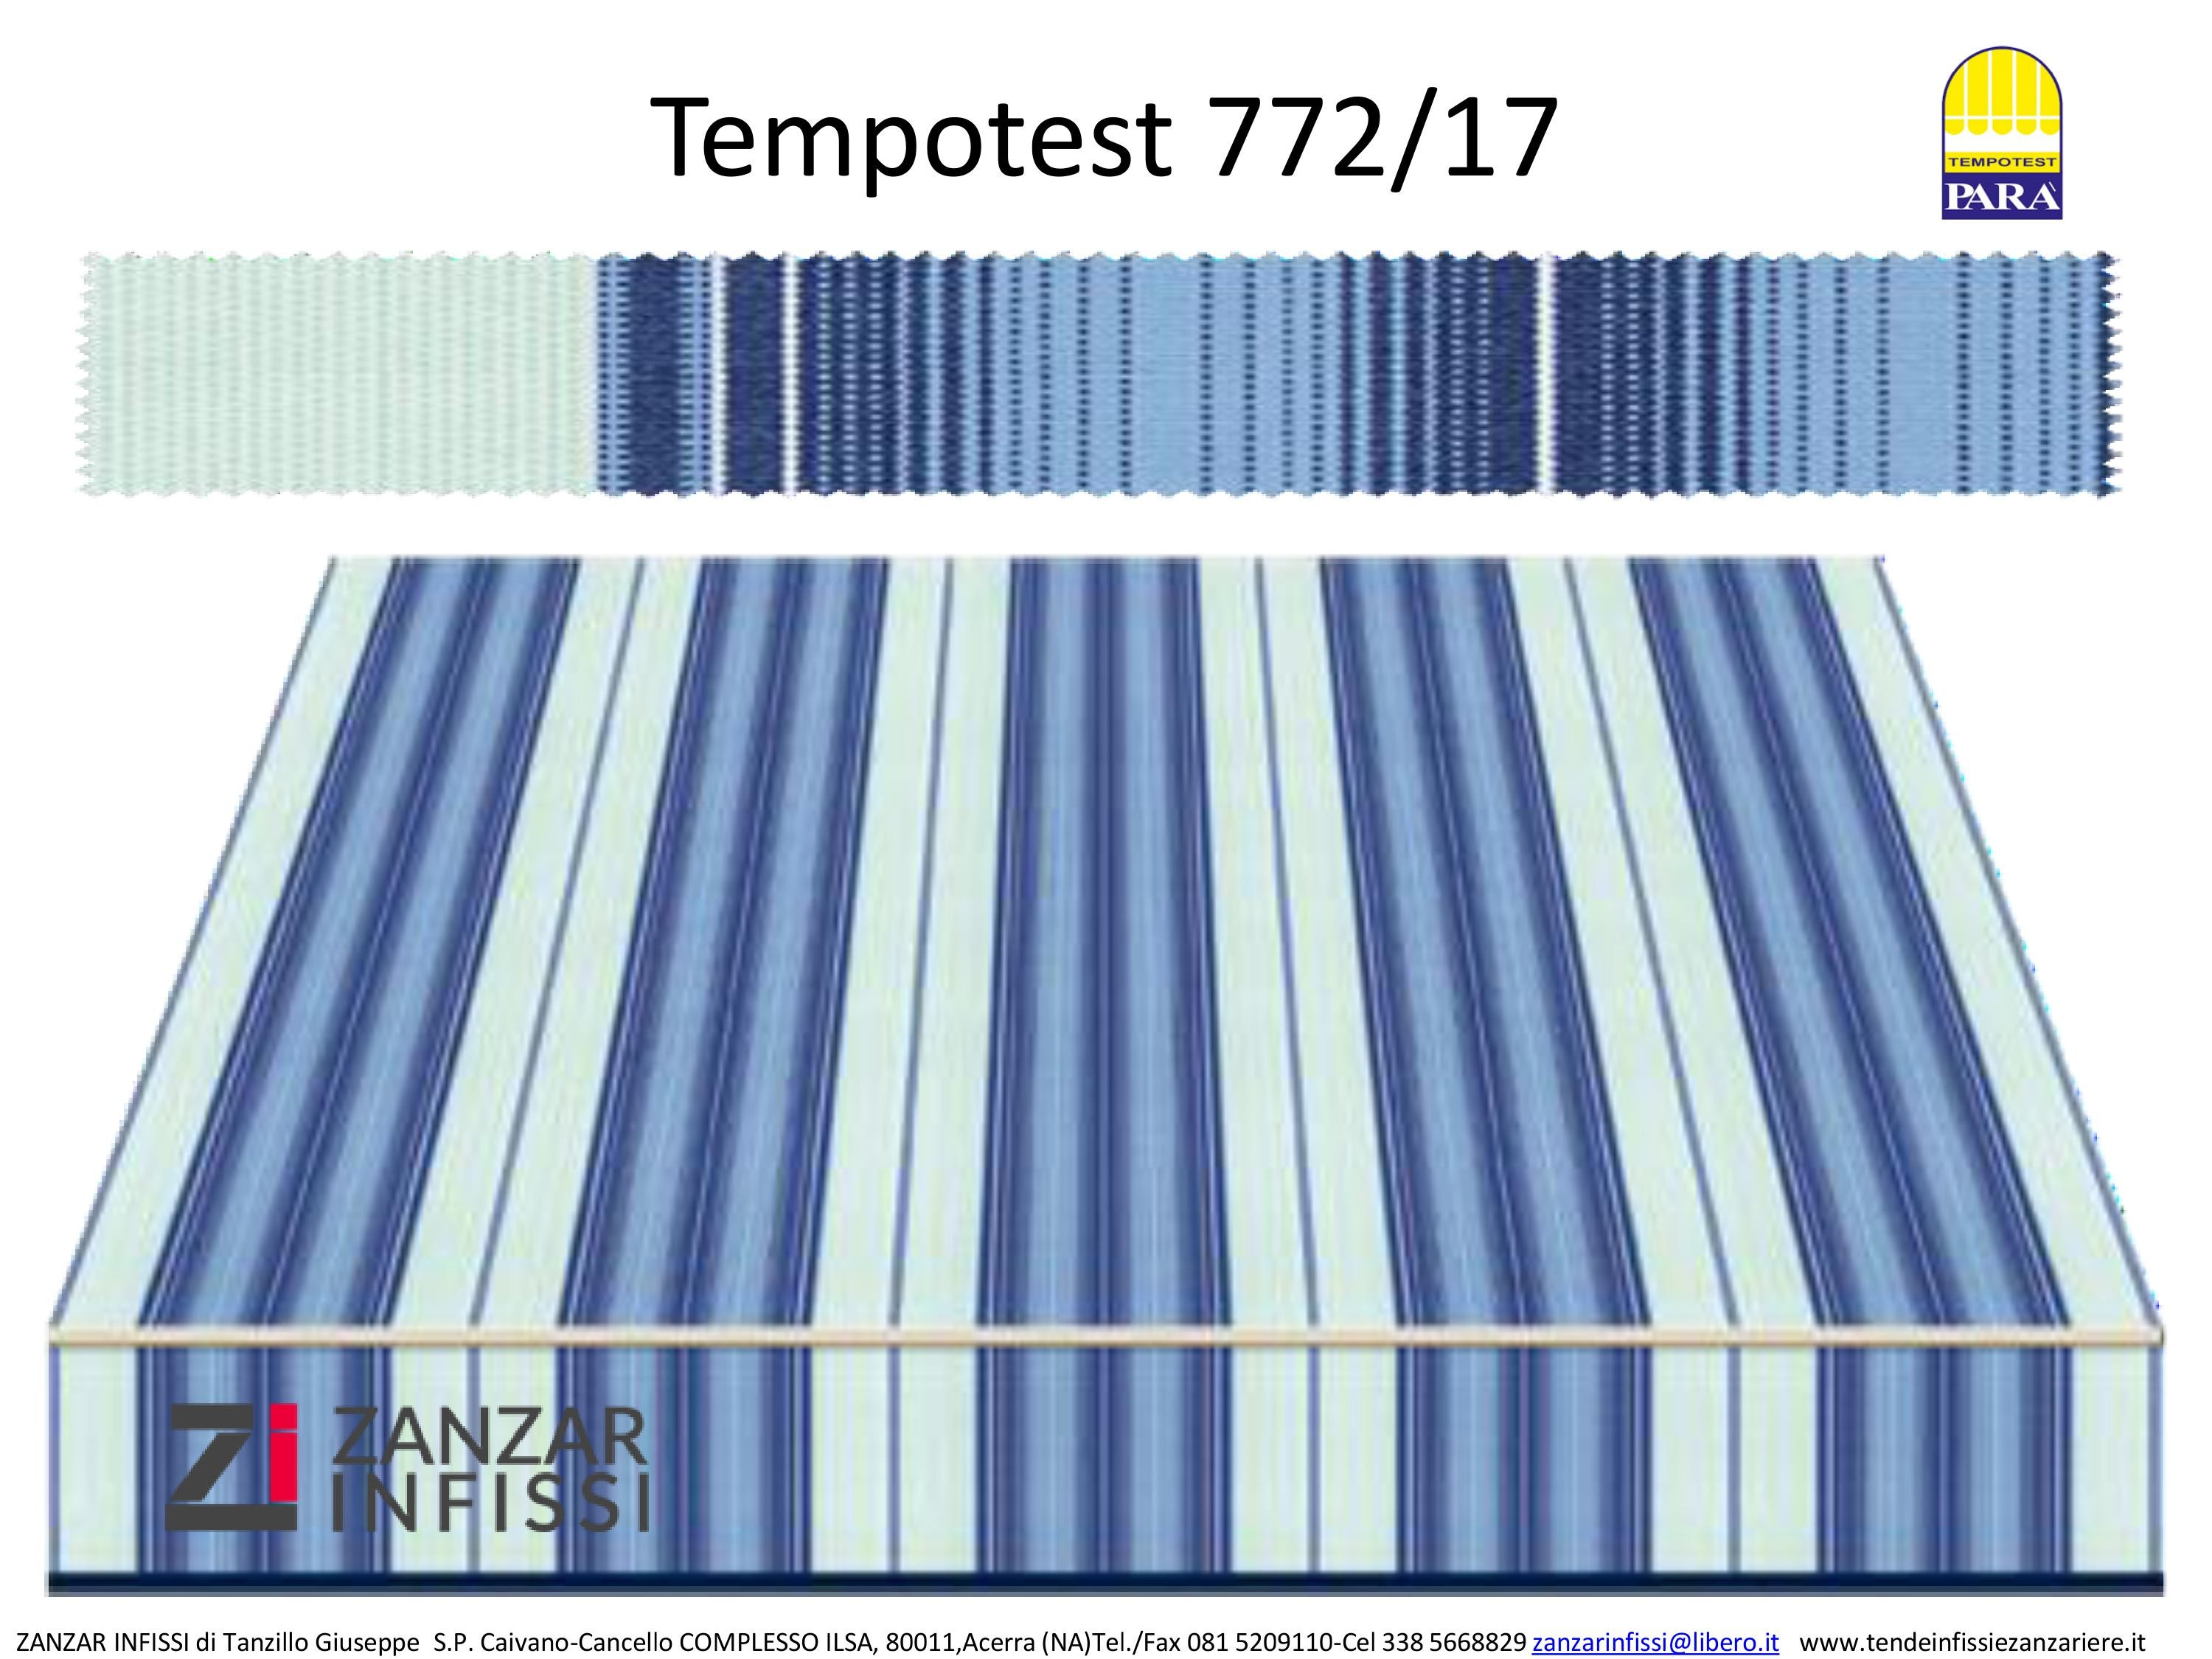 Tempotest 772/17